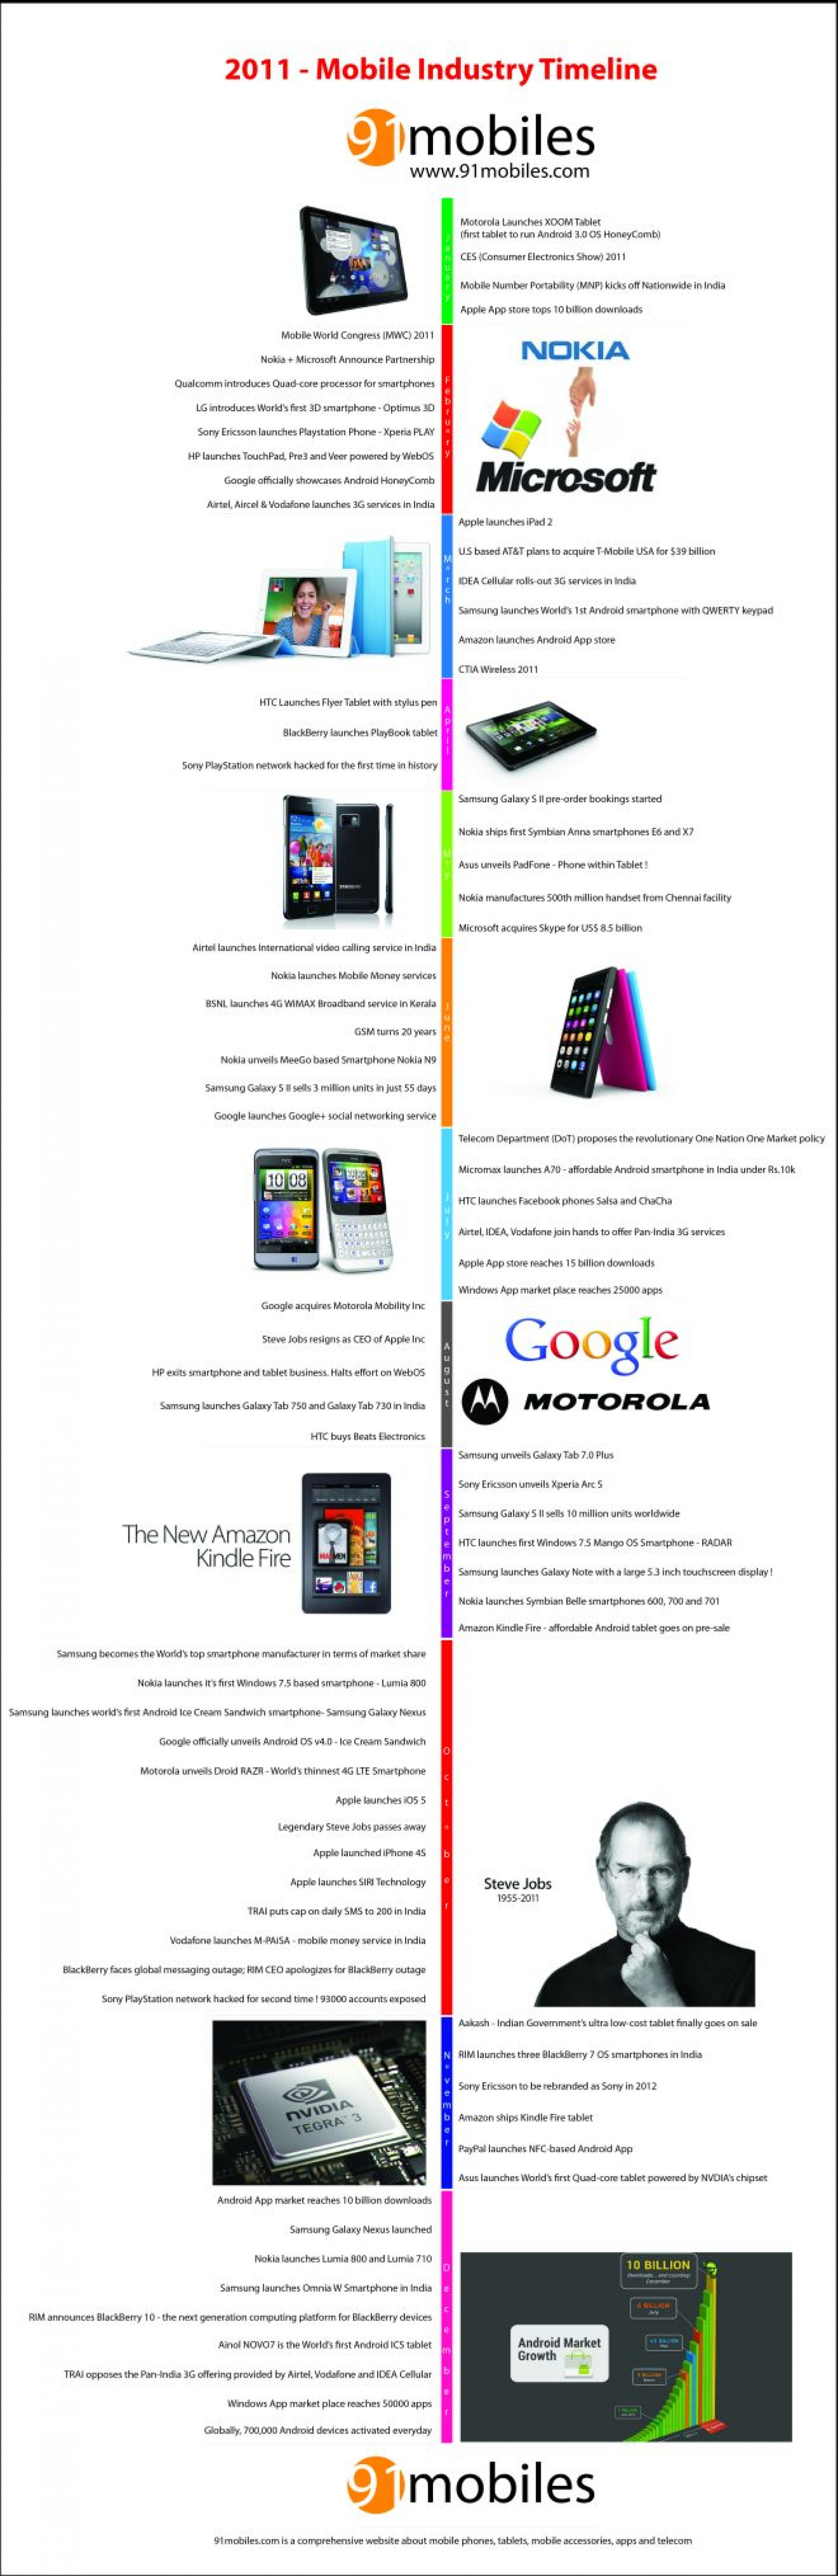 Mobile Industry in 2011 - A Timeline by 91mobiles.com Infographic